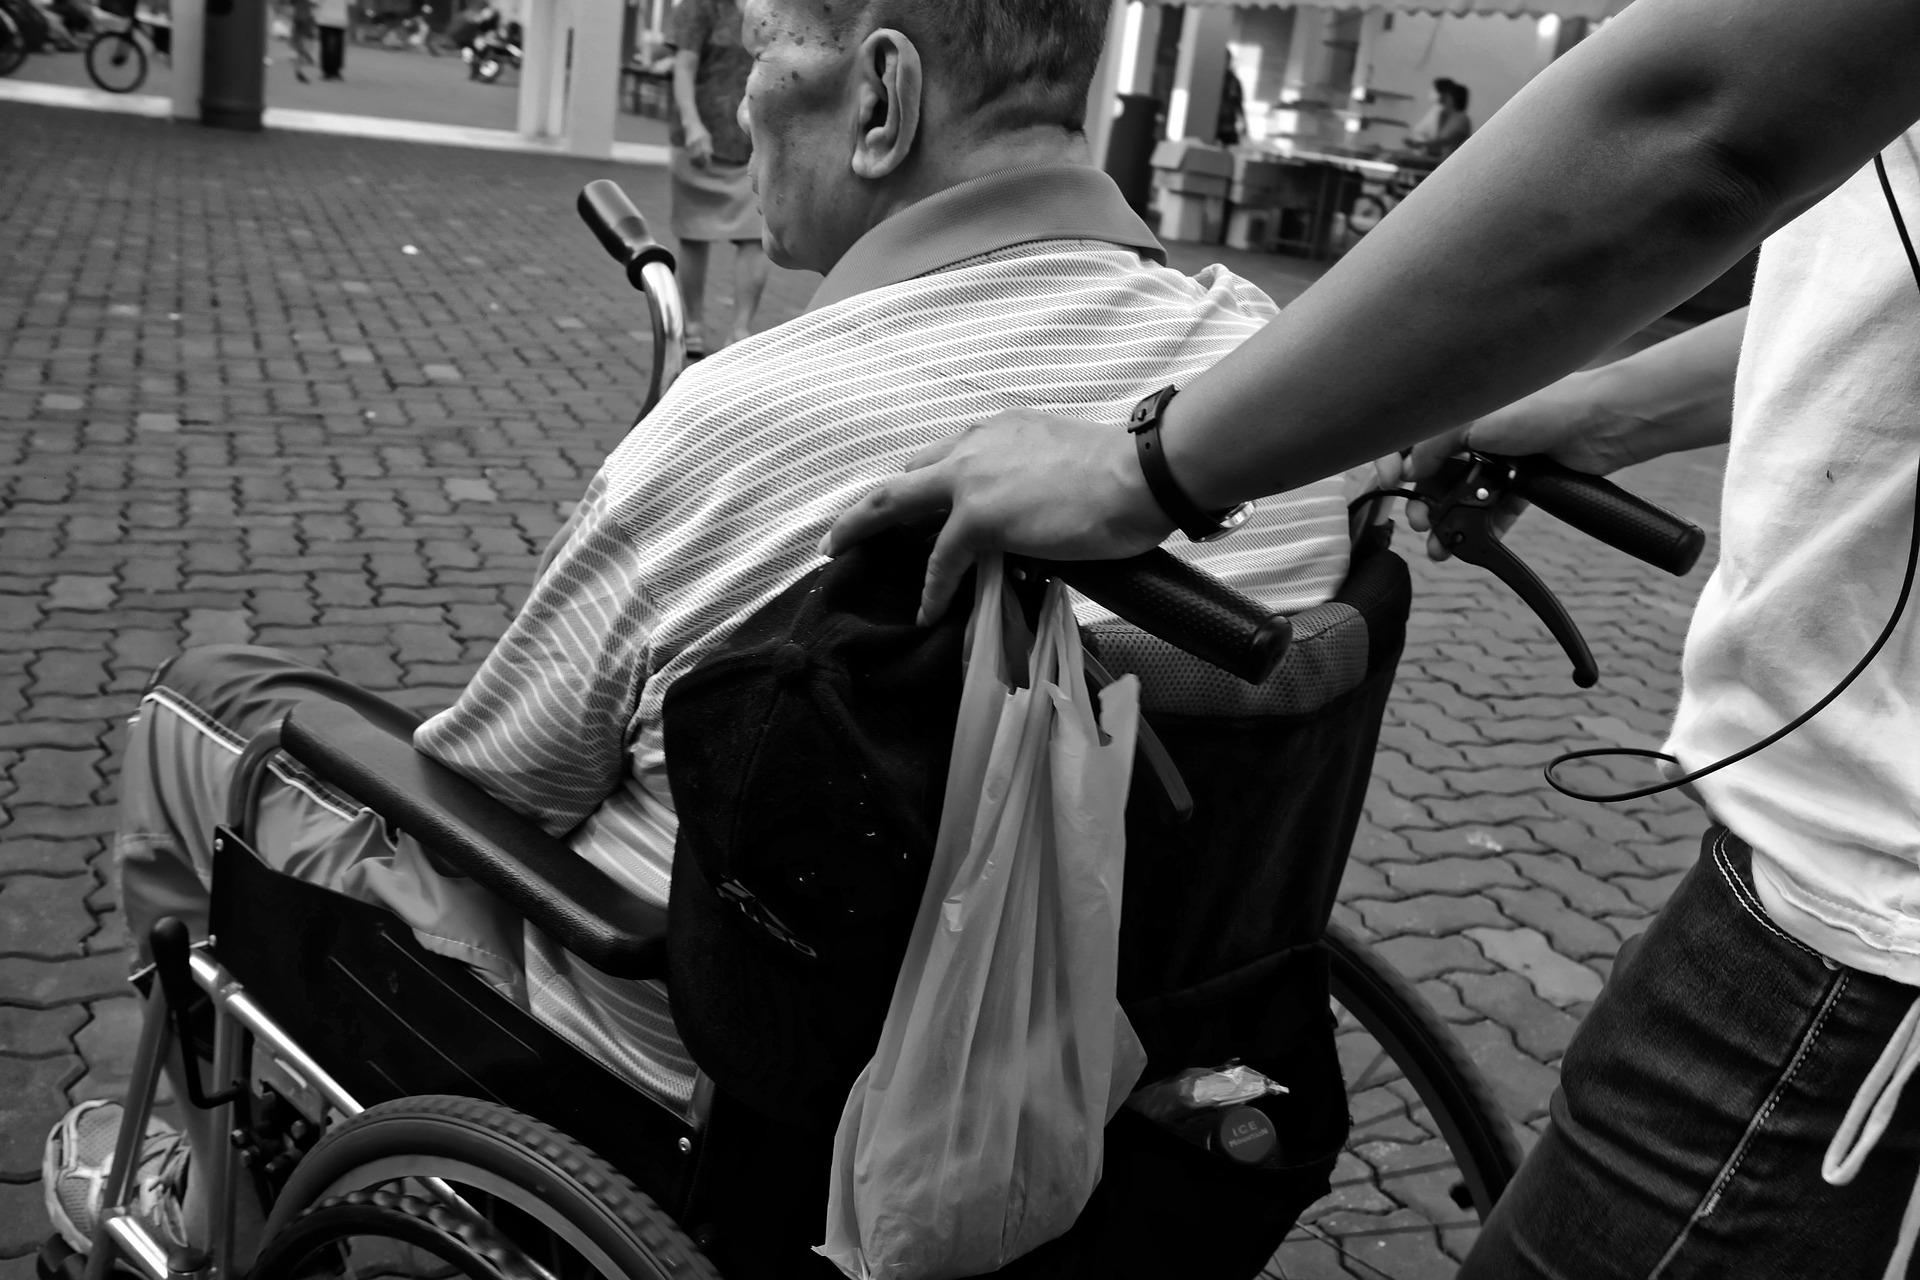 Elderly in a Wheelchair (Image by Kevin Phillips)